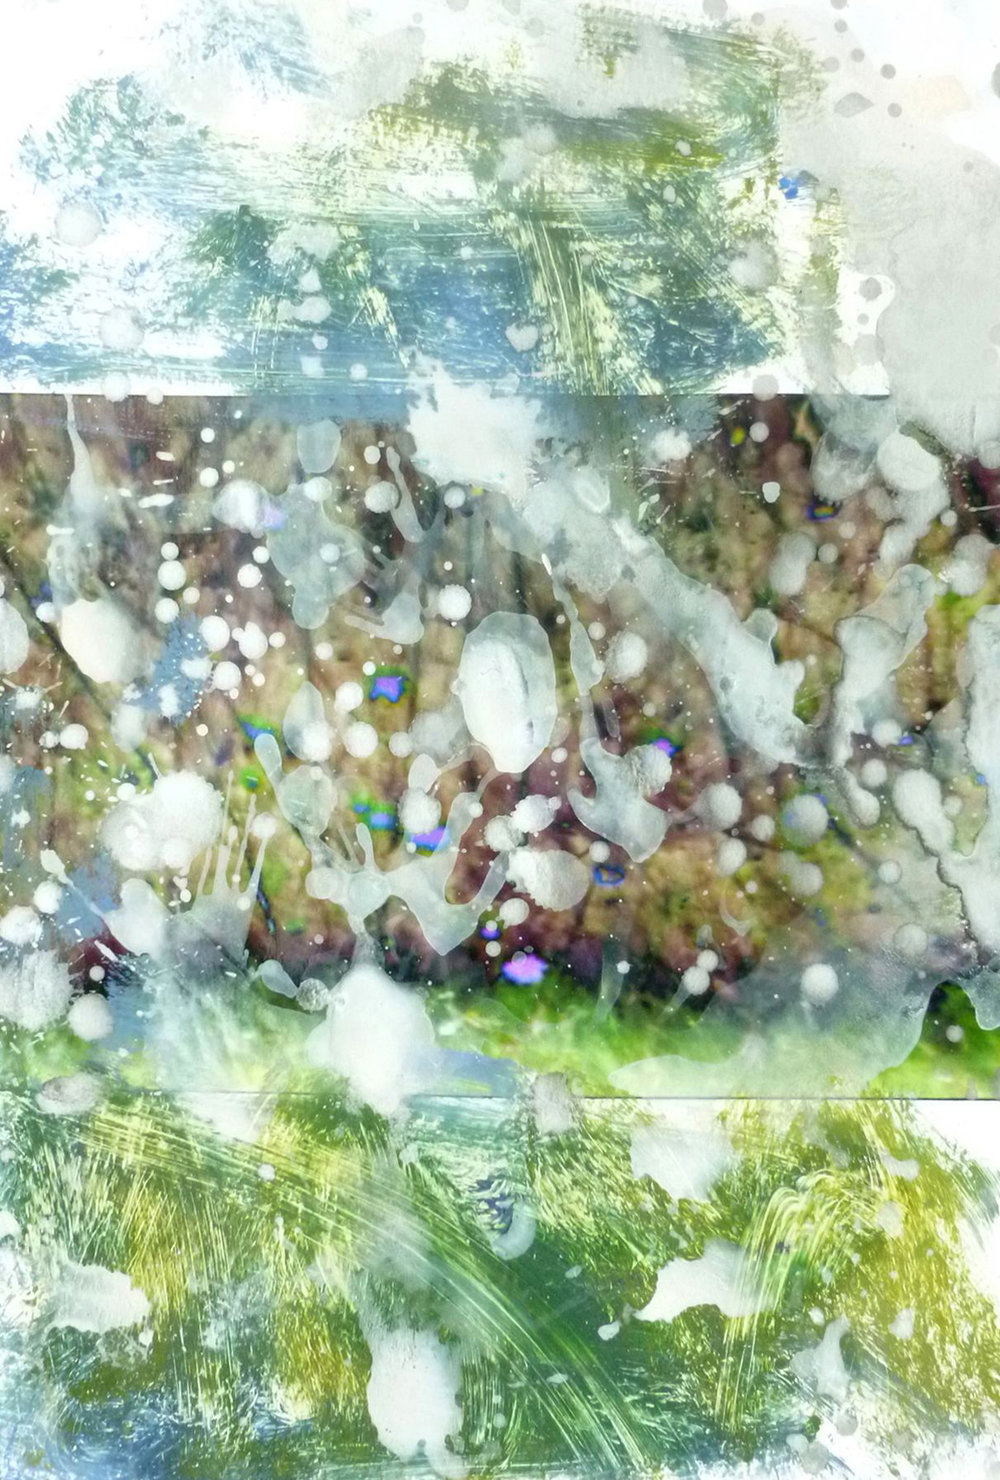 Annelies Štrba & Adrian Schiess   Untitled,  Pigment print and watercolor on paper Work size: 11 3/4 x 8 1/4 inches 29.8 x 21 cm